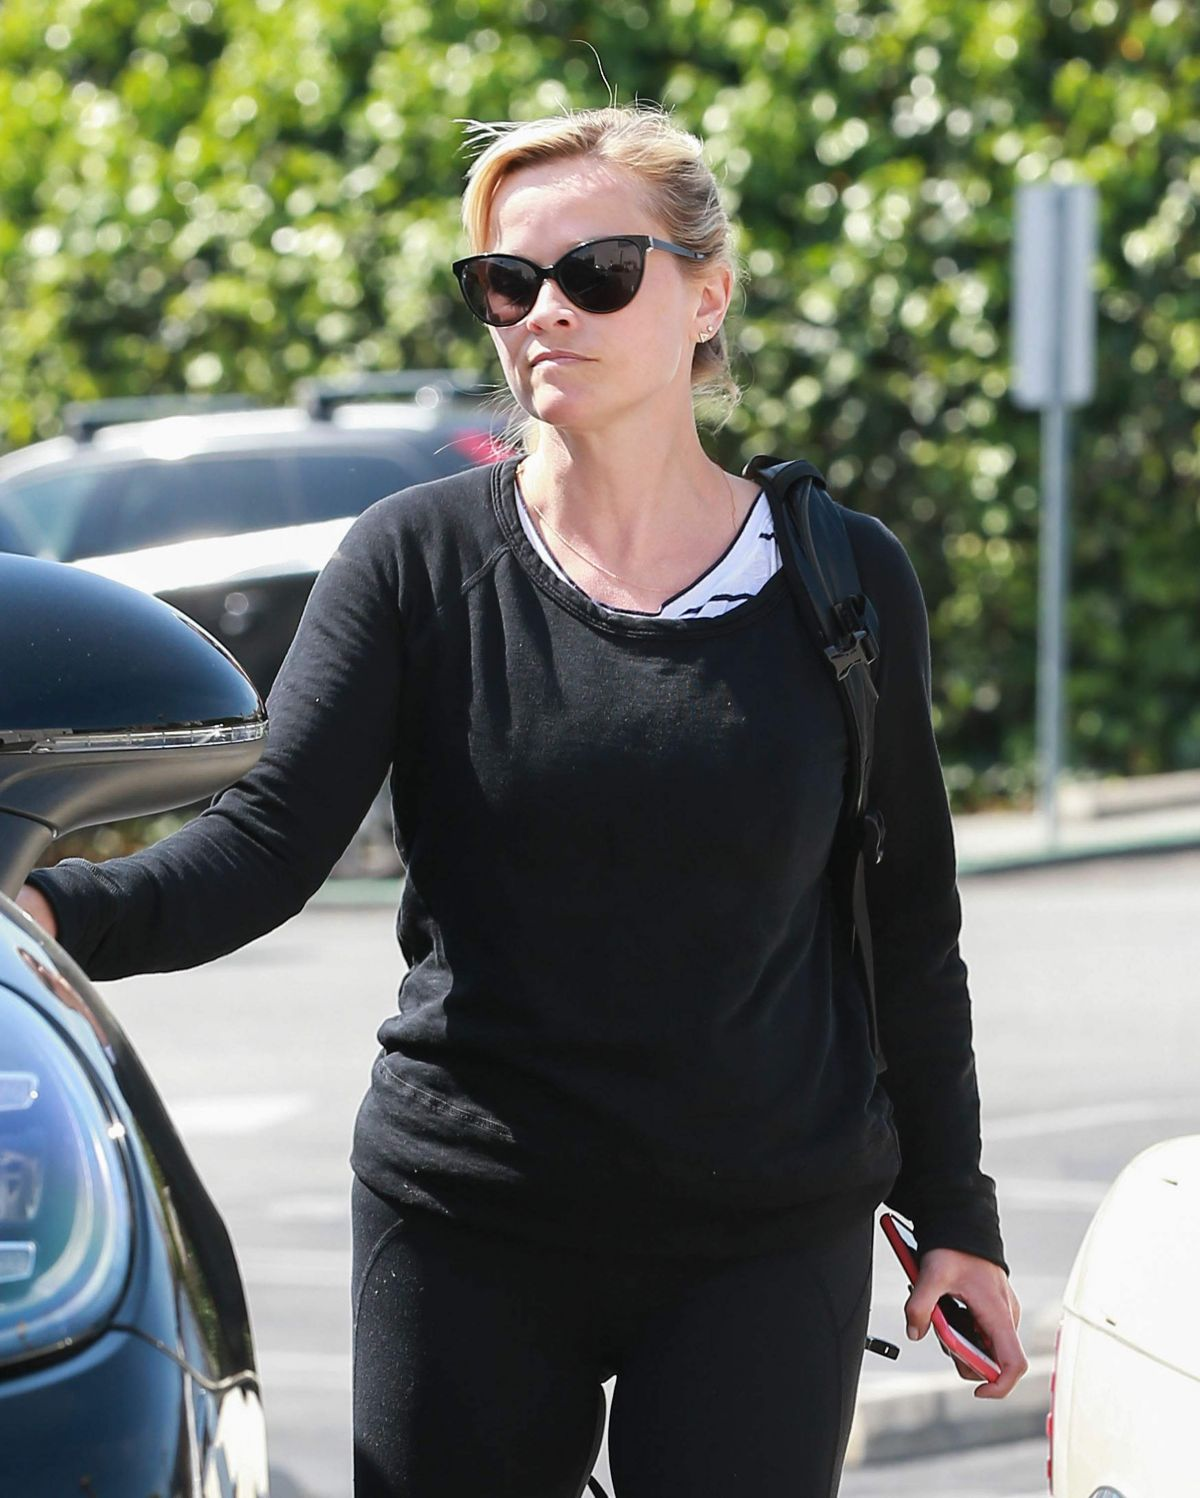 REESE WITHERSPOON Heading to a Yoga Class in Brentwood 04/10/2017